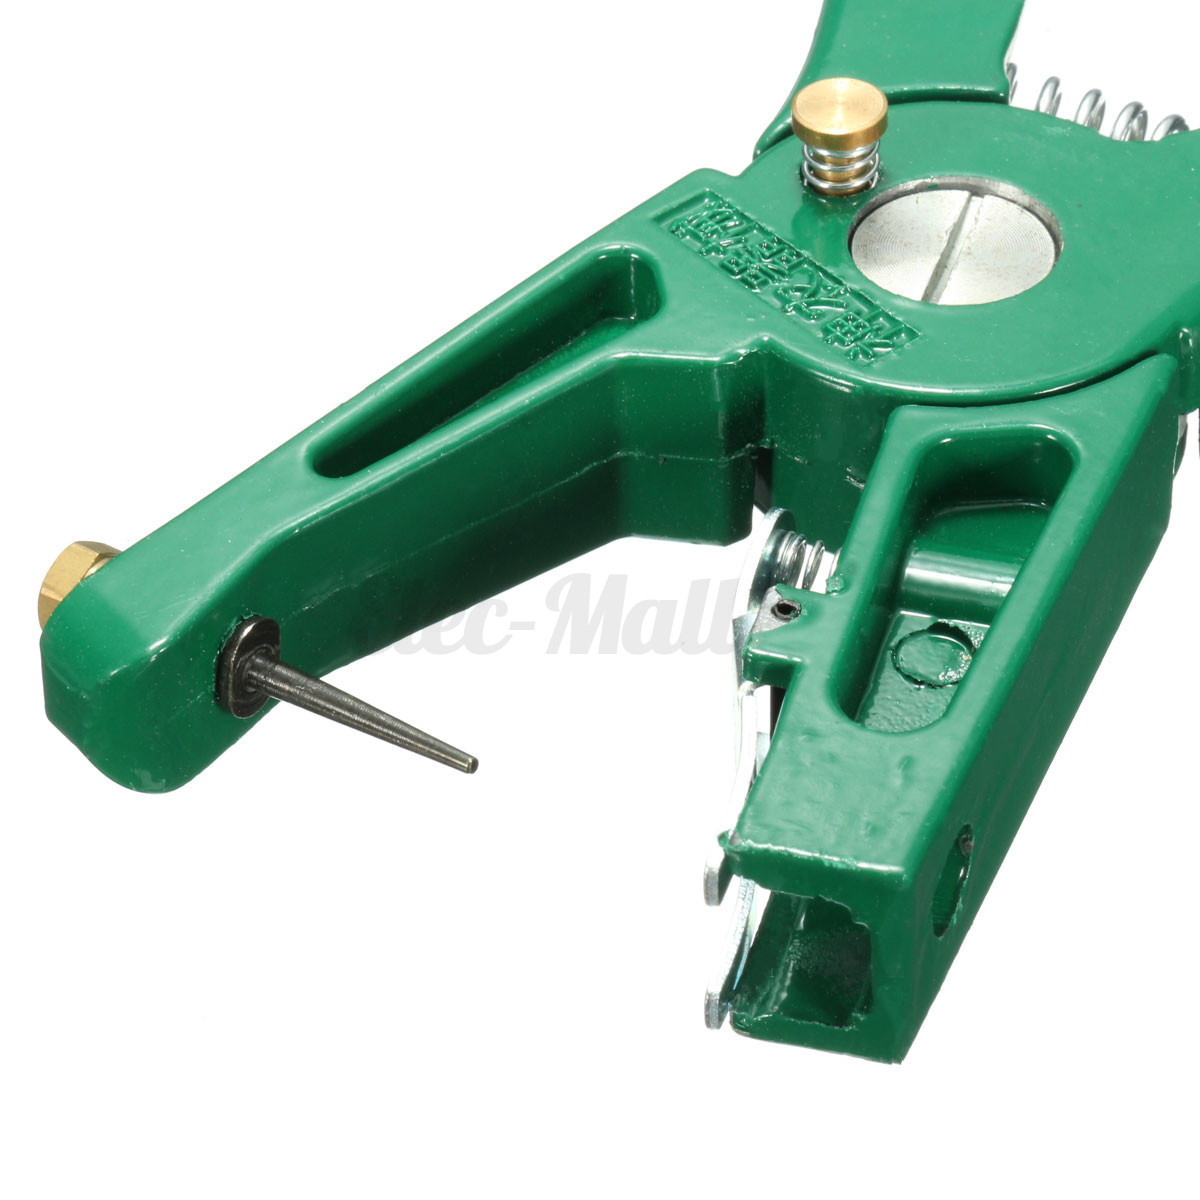 Cattle Livestock Ear Tag Plier Applicator Puncher Tagger